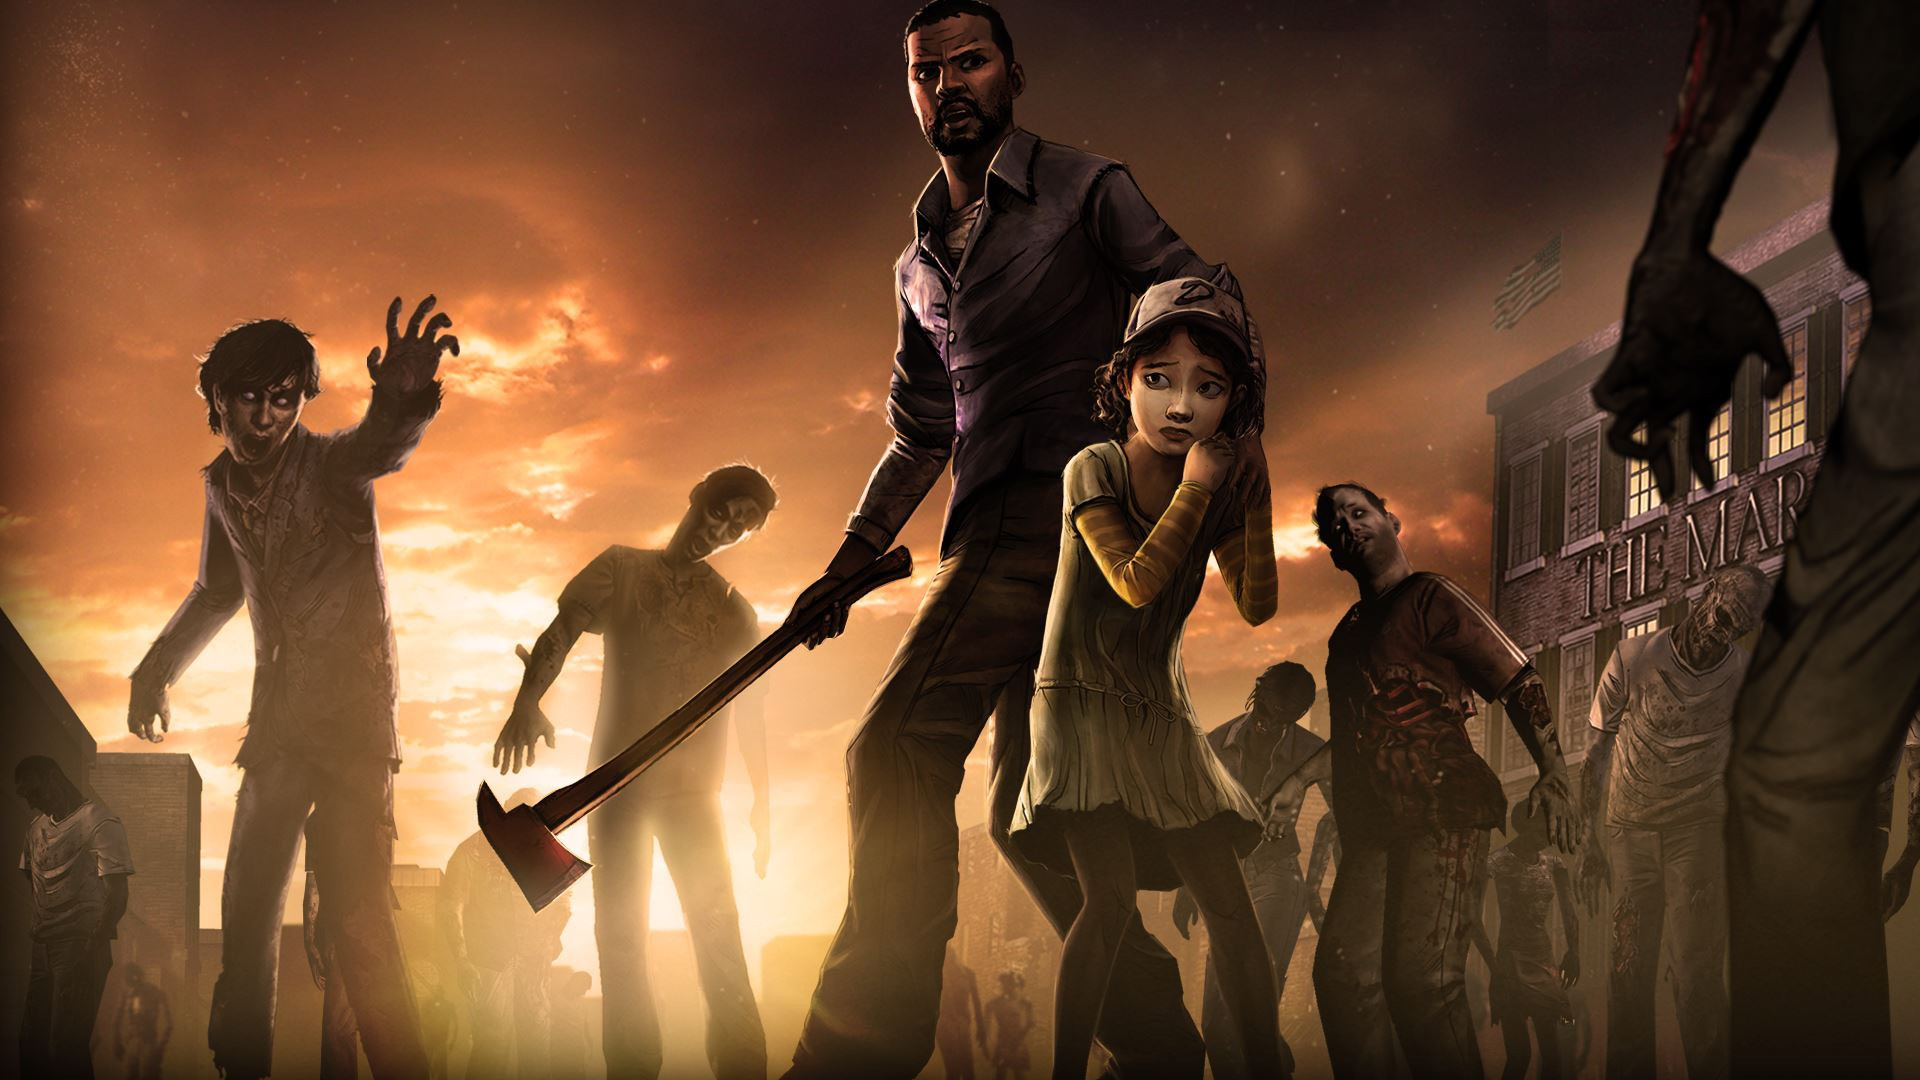 The Walking Dead Season 3 Confirms Returning Character, Connection To Comics walking dead1111